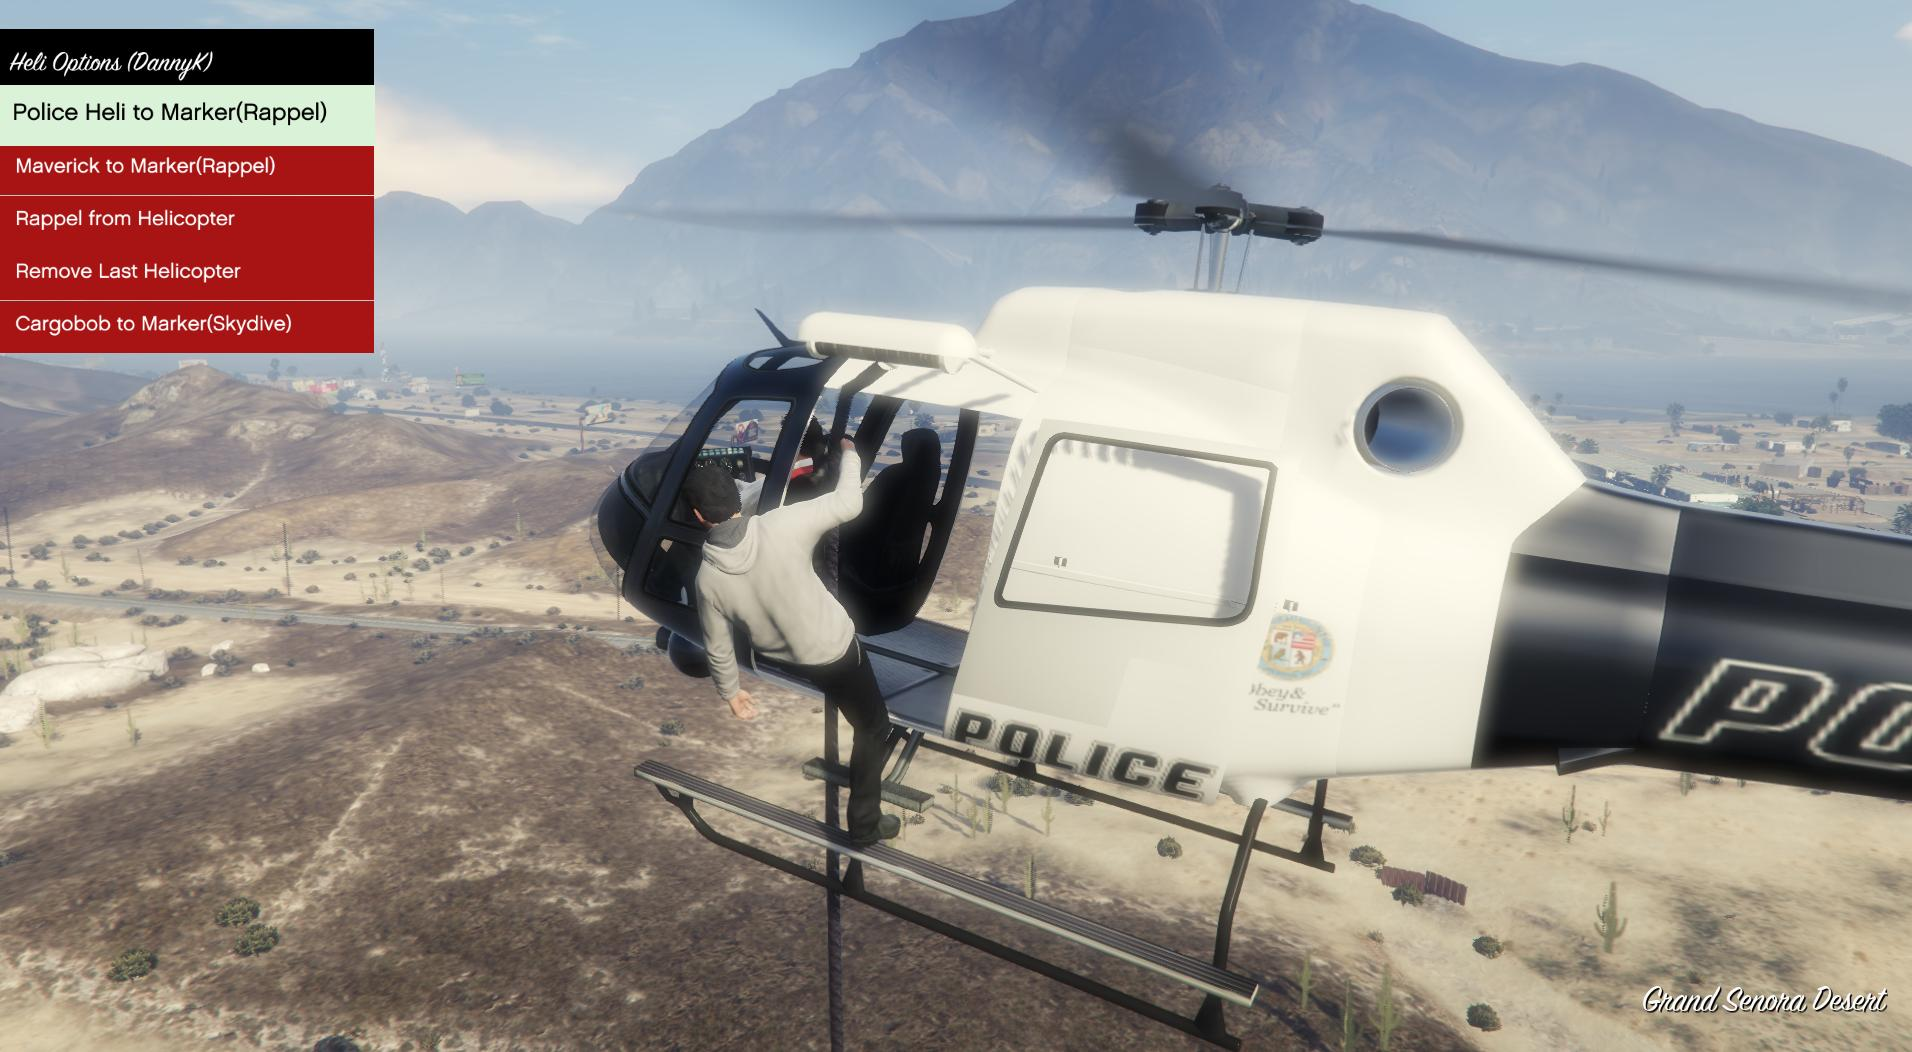 Release] Airtaxi + Helicopter Rappel mod v2 02 / Works